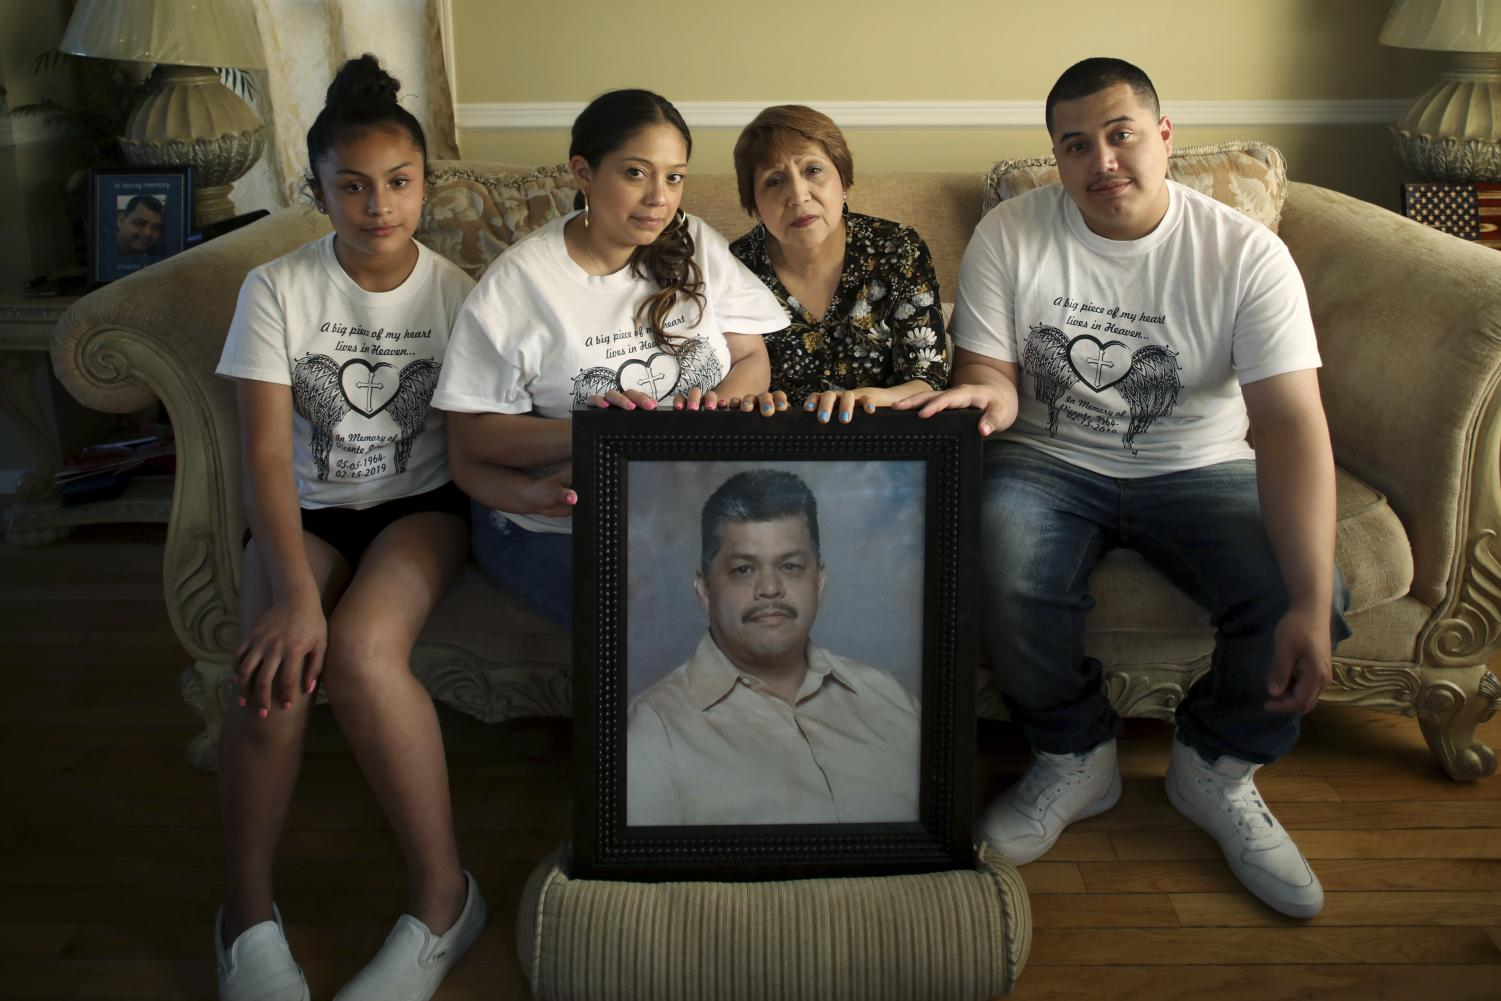 In this Wednesday, May 22, 2019 photo, family members of Vicente Juarez, including from left to right, his granddaughter Dyani (cq), 12, daughter Diana, wife Leticia and son Christian, pose for a photograph with a portrait of Juarez at their home in Oswego, Ill. Juarez was one of five people fatally shot by a coworker on Feb. 15 at the Henry Pratt Co. in Aurora. A Chicago Tribune investigation suggests that tens of thousands of Illinois residents whose gun licenses have been revoked could still have firearms. The problem was underscored in February's Aurora shooting when the shooter used a gun he kept despite the revocation of his Firearm Owner's Identification card in 2014.